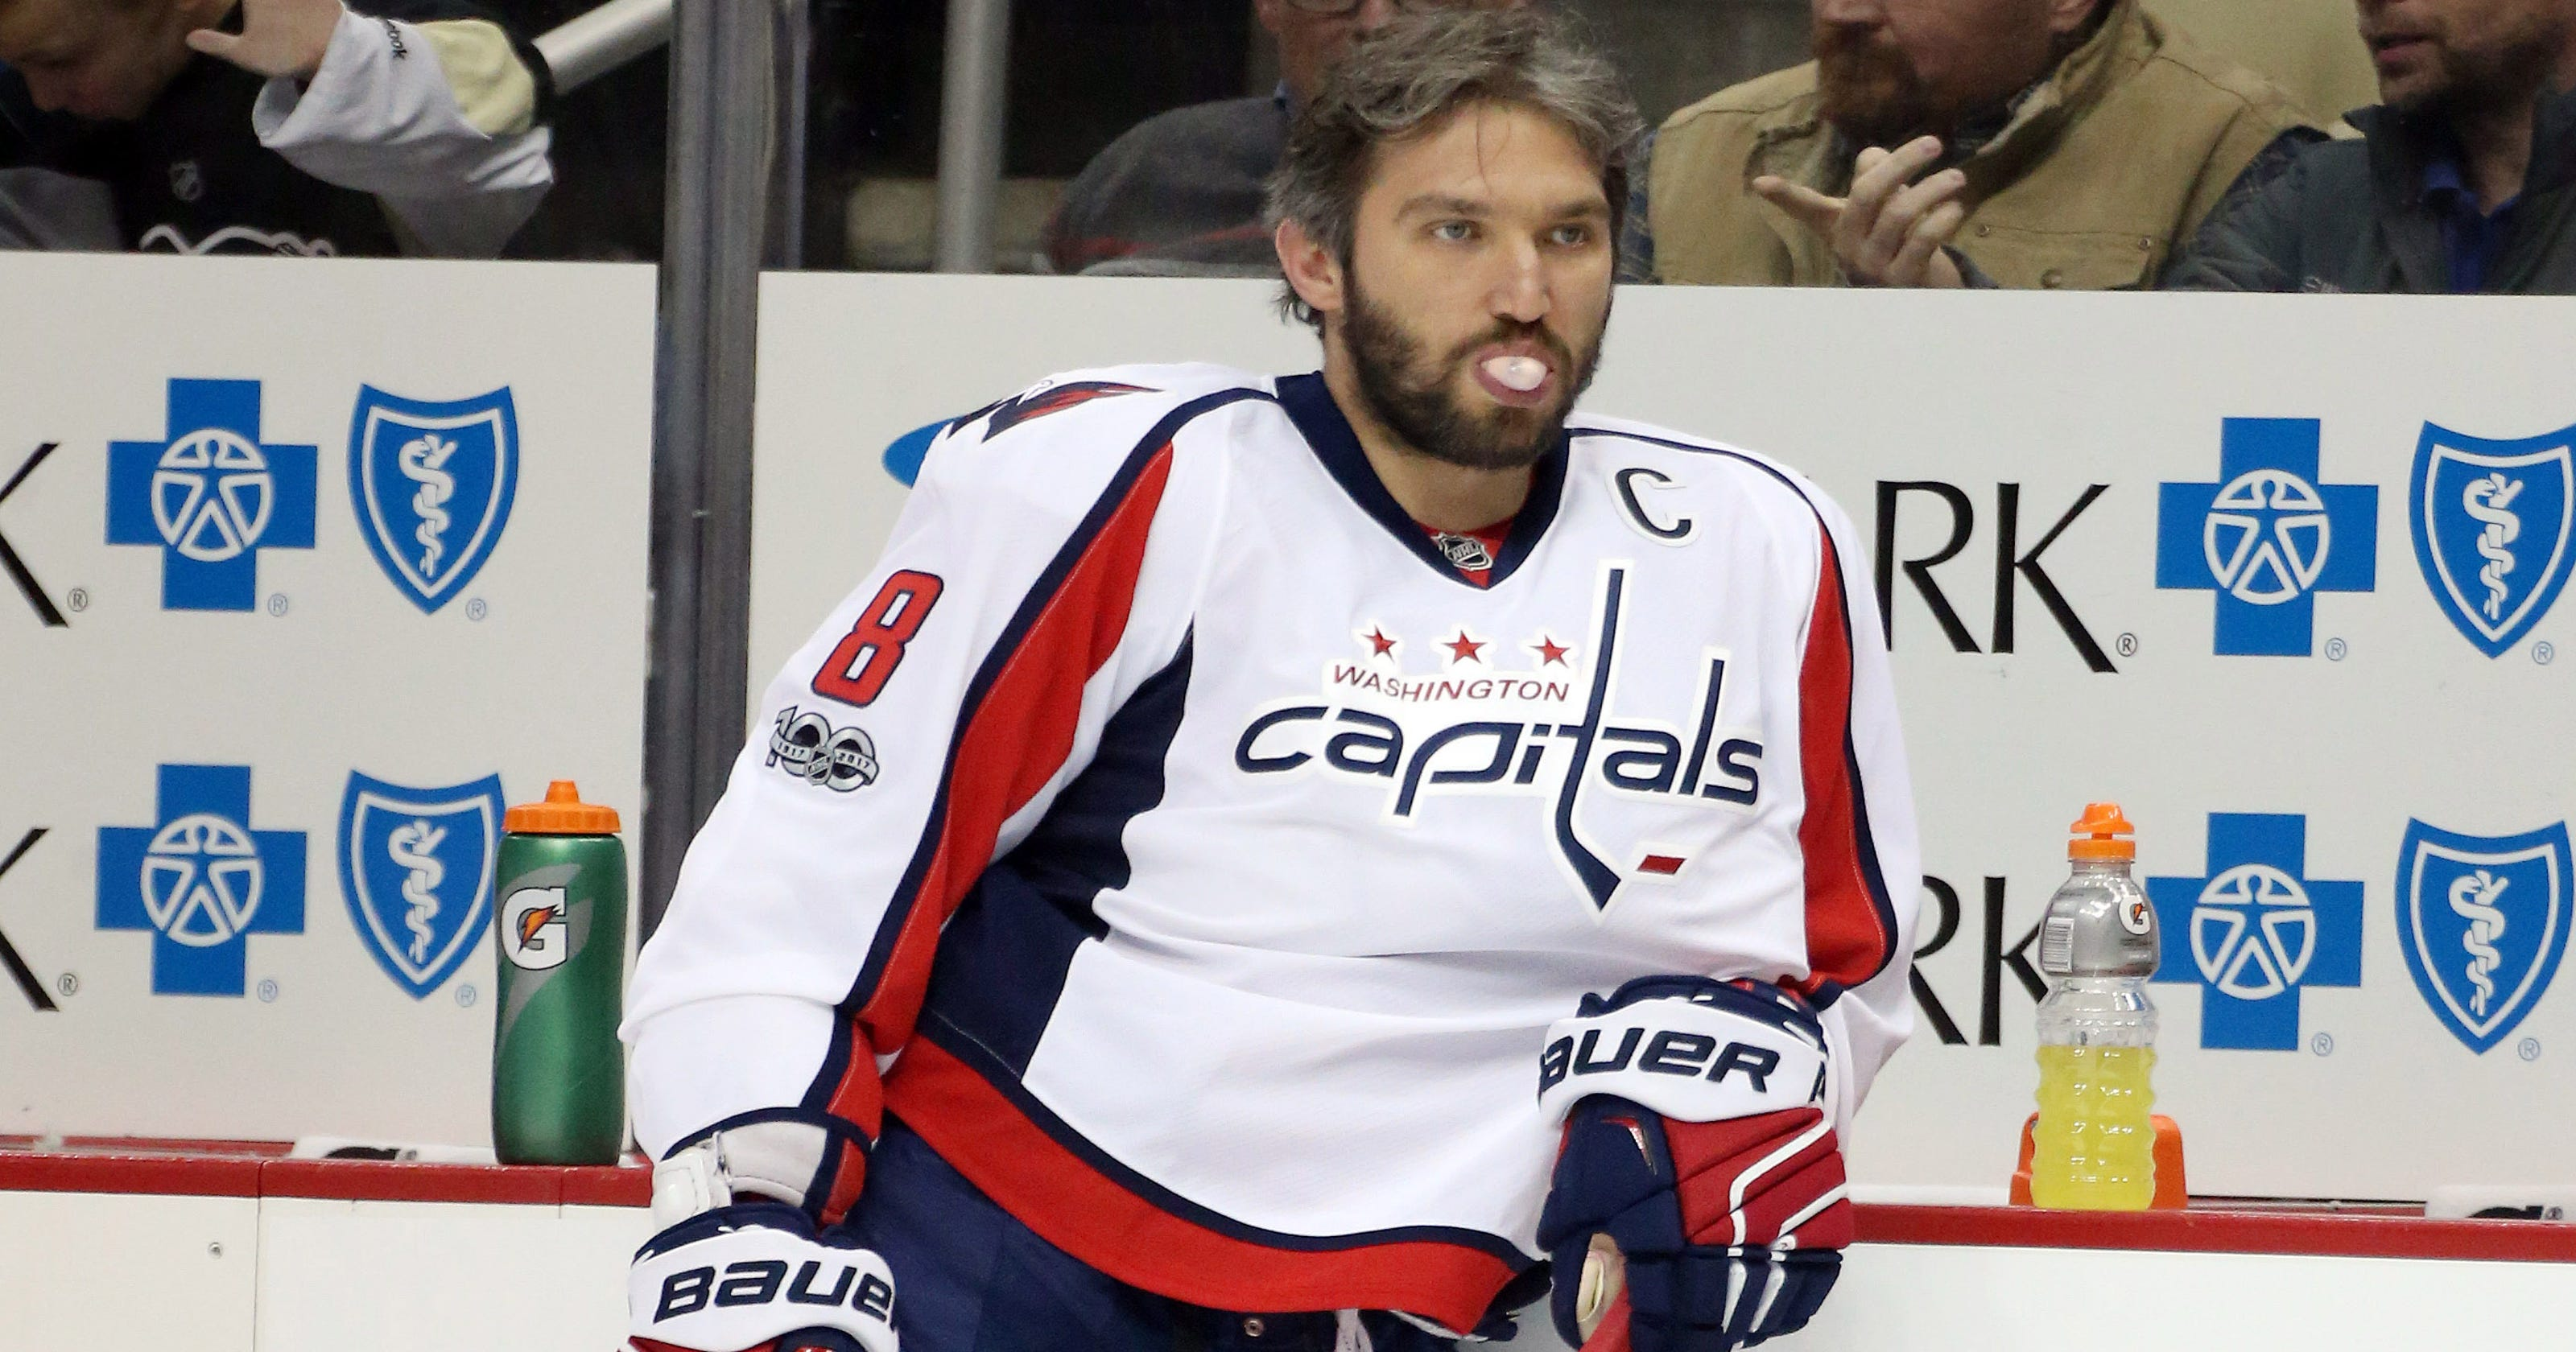 3cbc5e6bd Alex Ovechkin on being a Russian living in Washington area: 'I'm neutral'